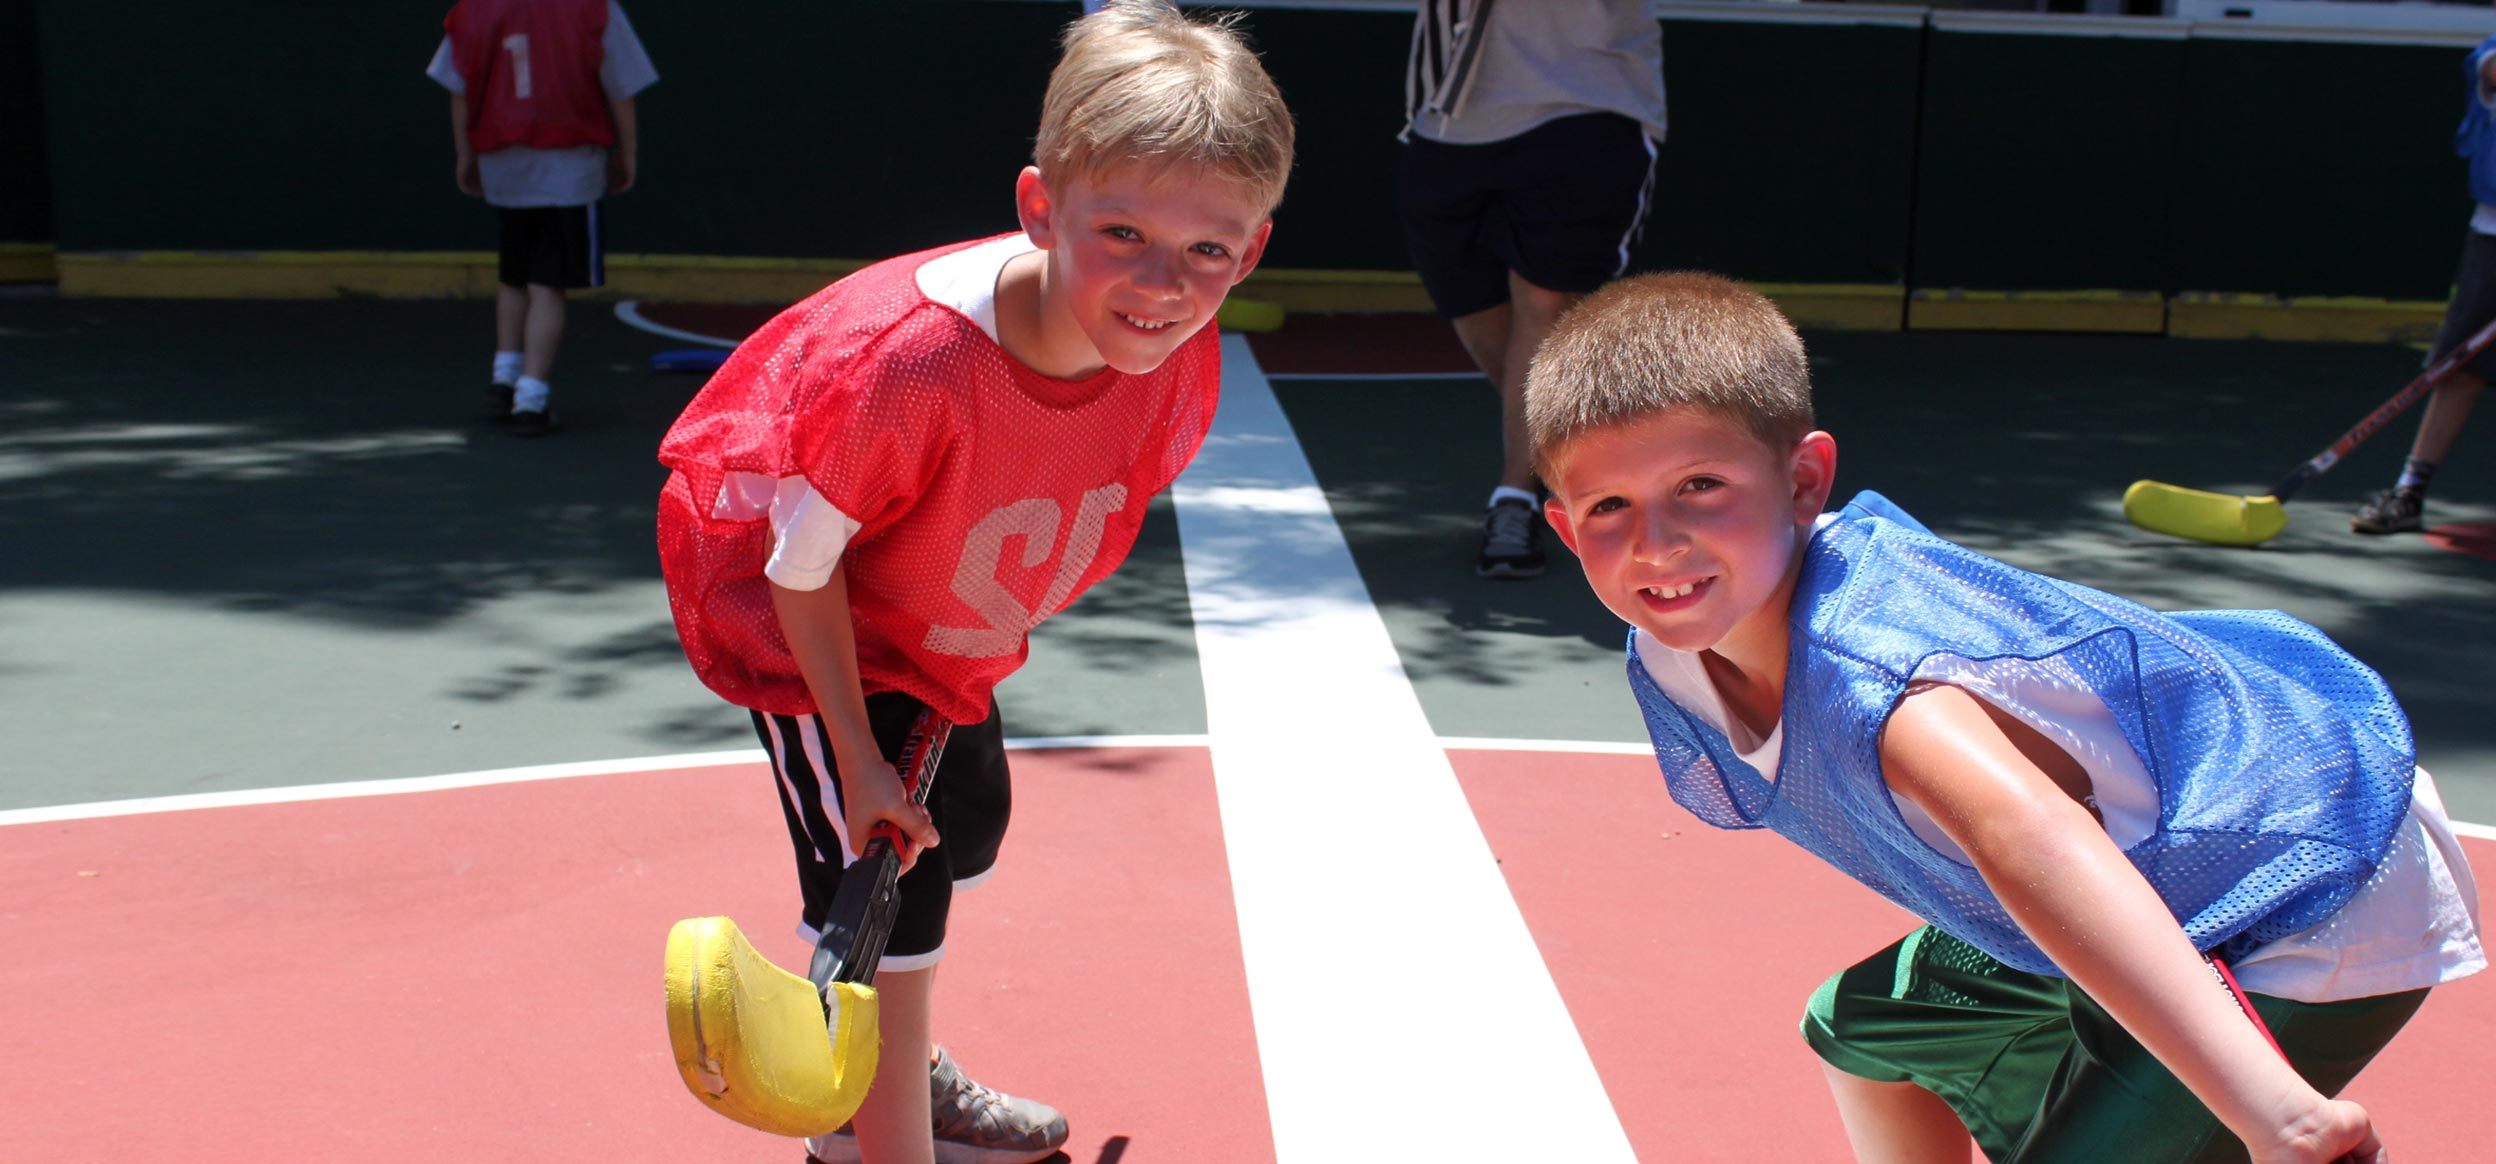 Programs for All Ages at Camp Hillard Day Camp